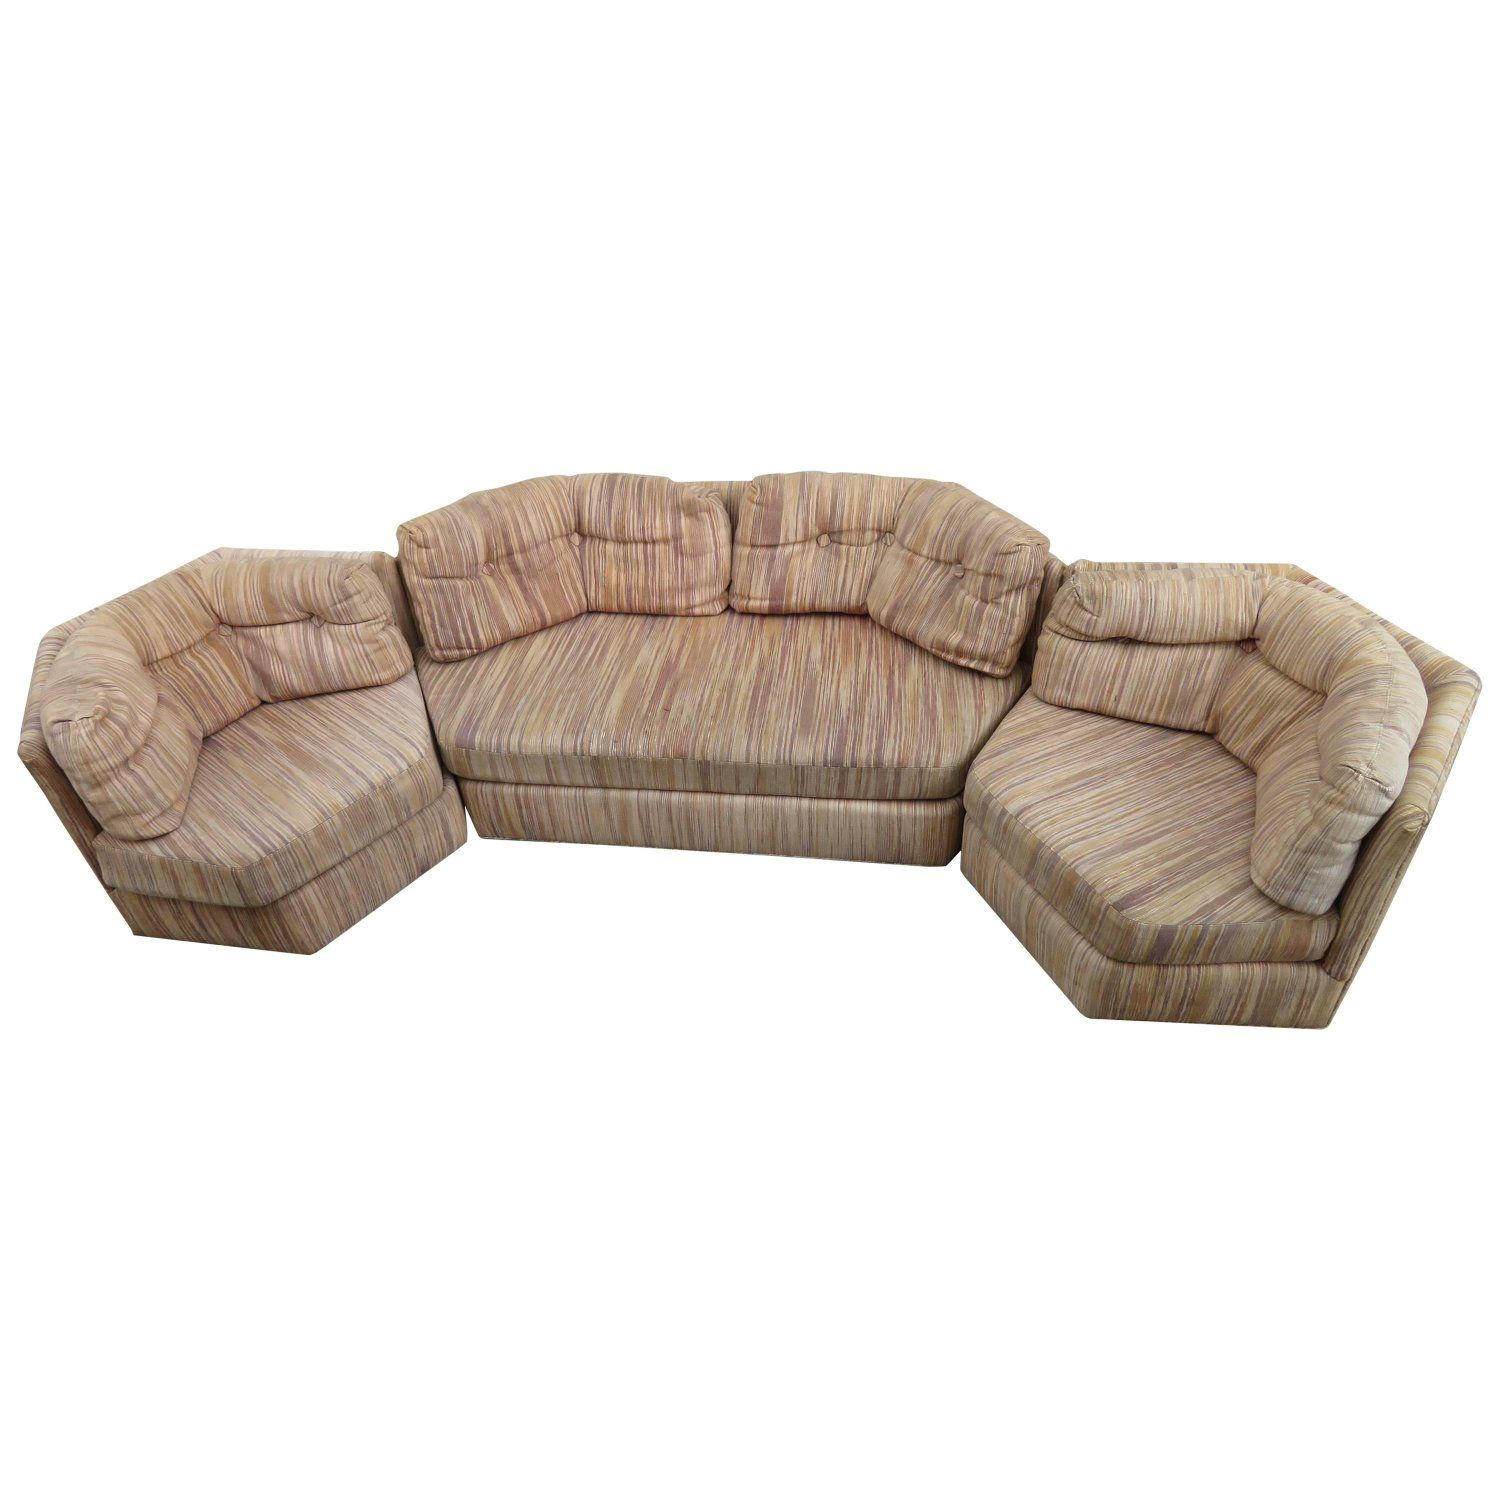 Surprising Fantastic Milo Baughman Four Piece Octagon Sofa Sectional Inzonedesignstudio Interior Chair Design Inzonedesignstudiocom